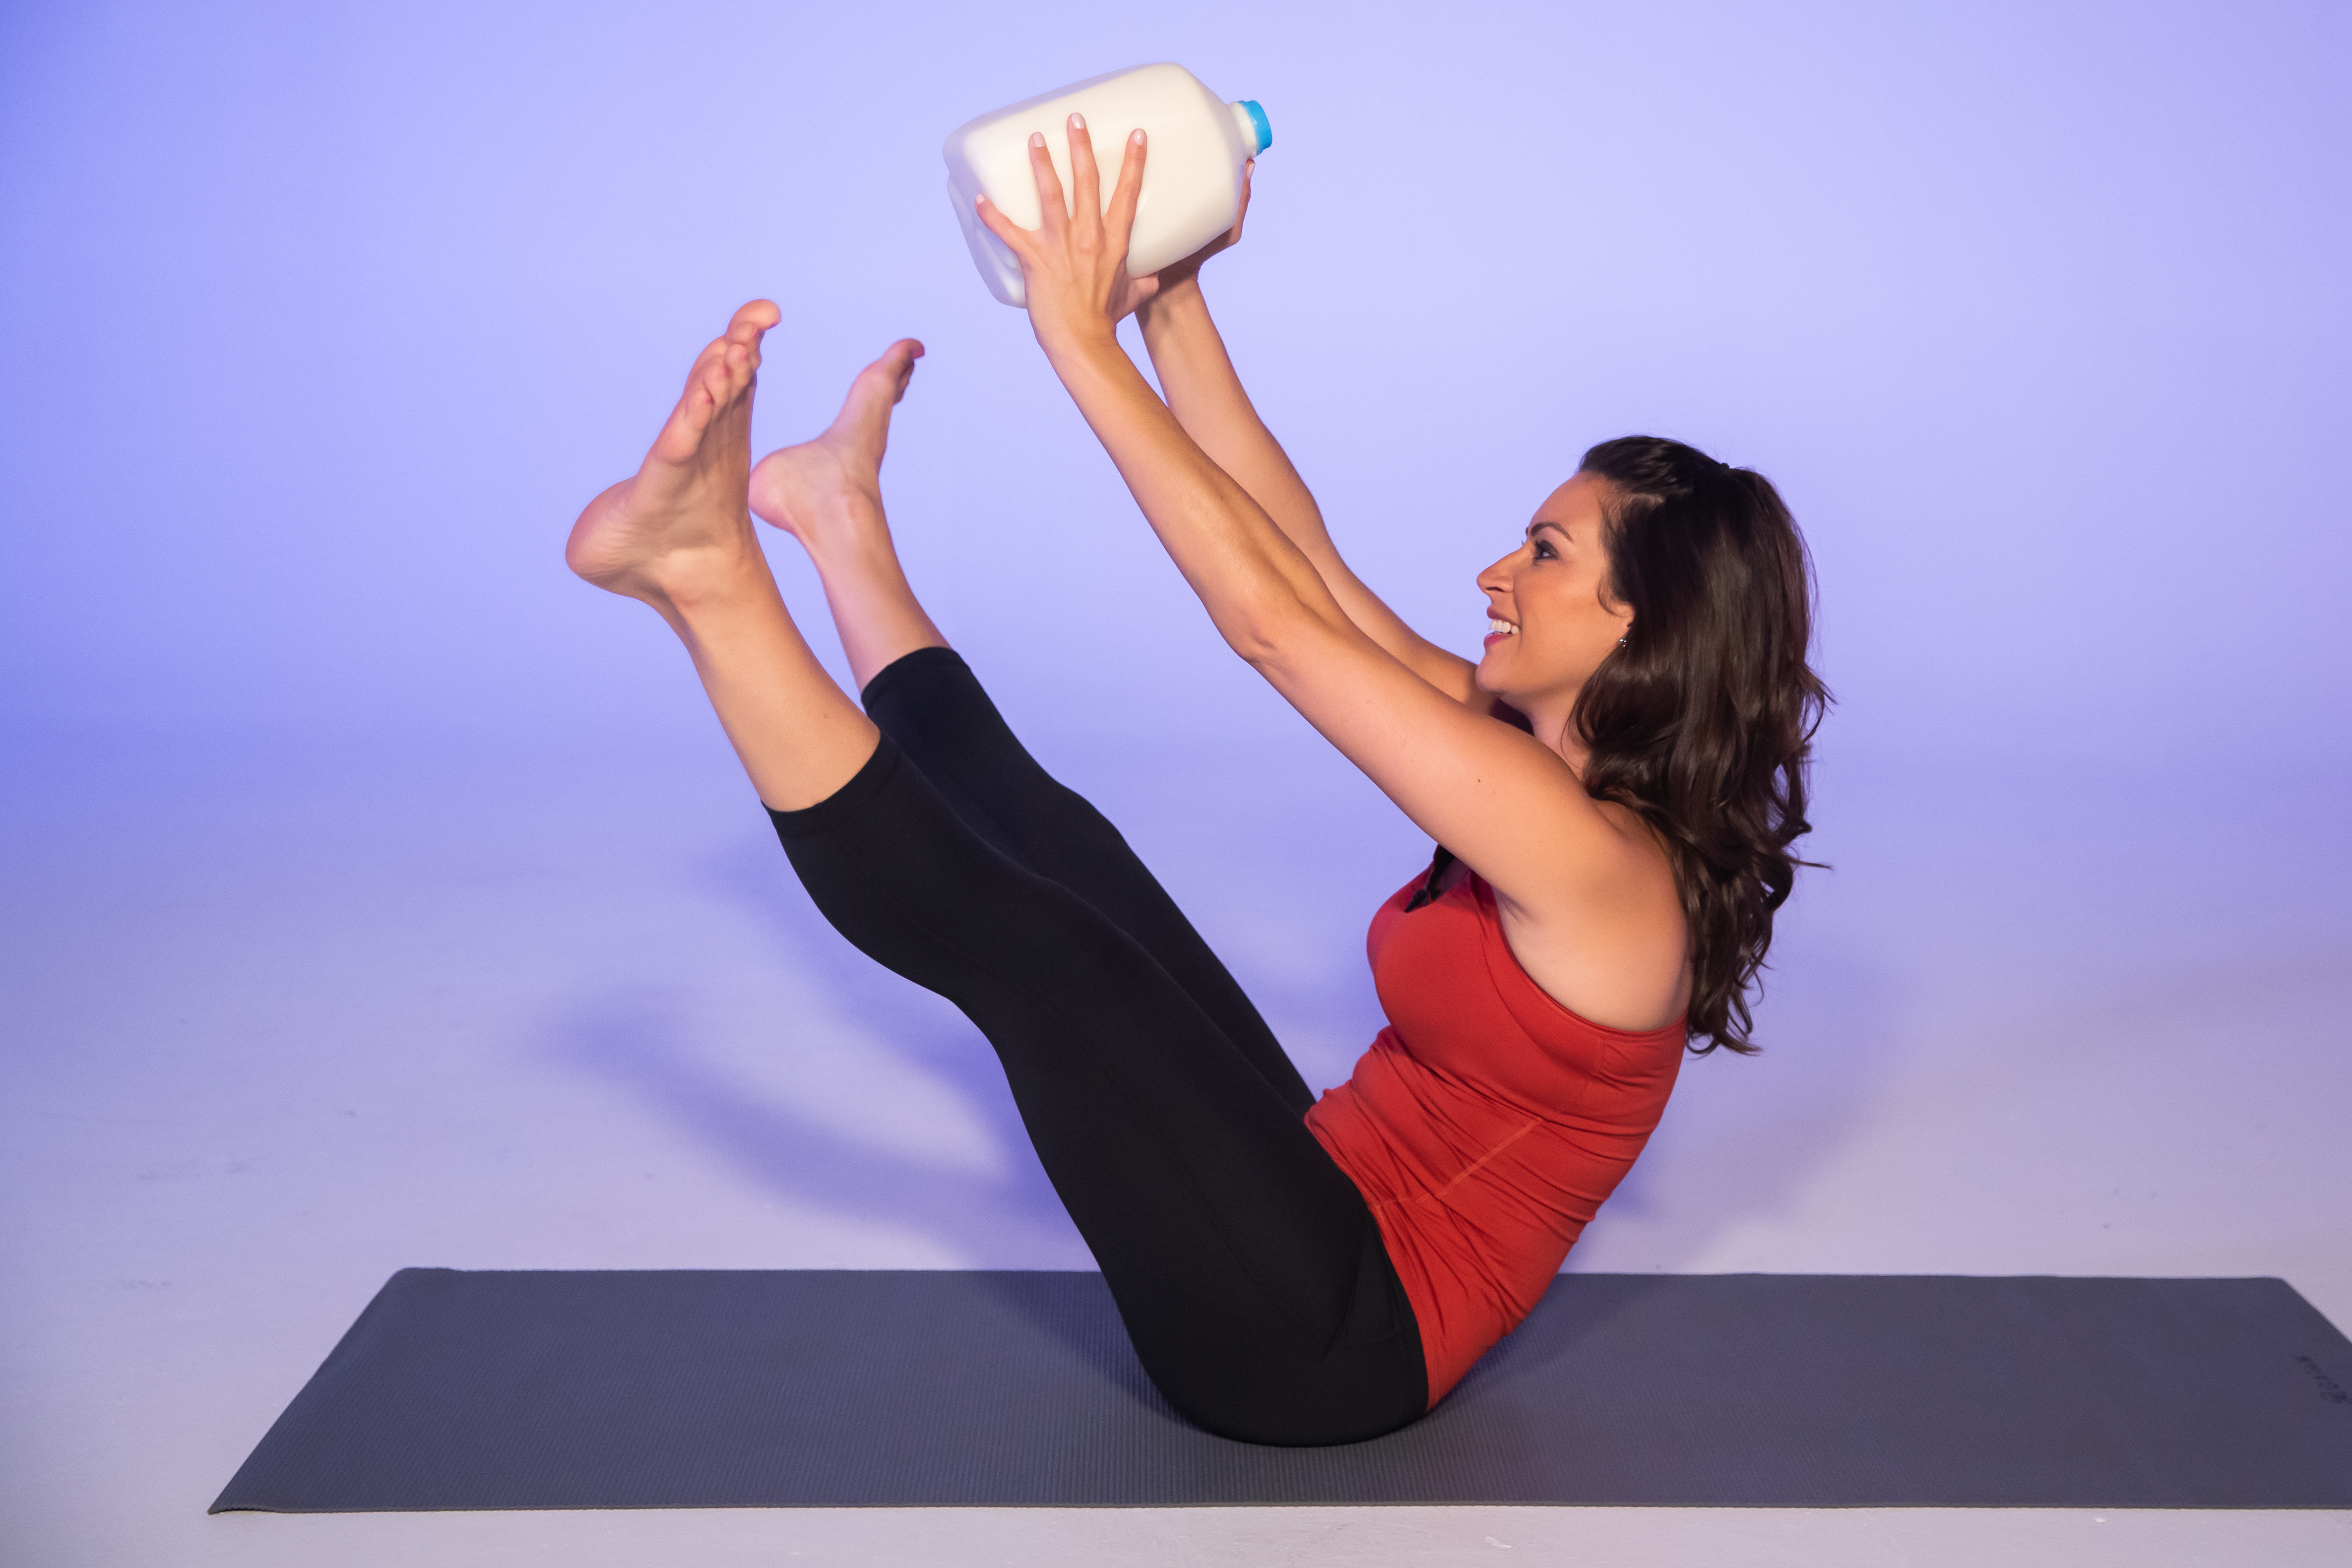 Stephanie Mansour demonstrates how to use a gallon of milk as a weight in this V-sit and reach workout to strengthen and tone core muscles.